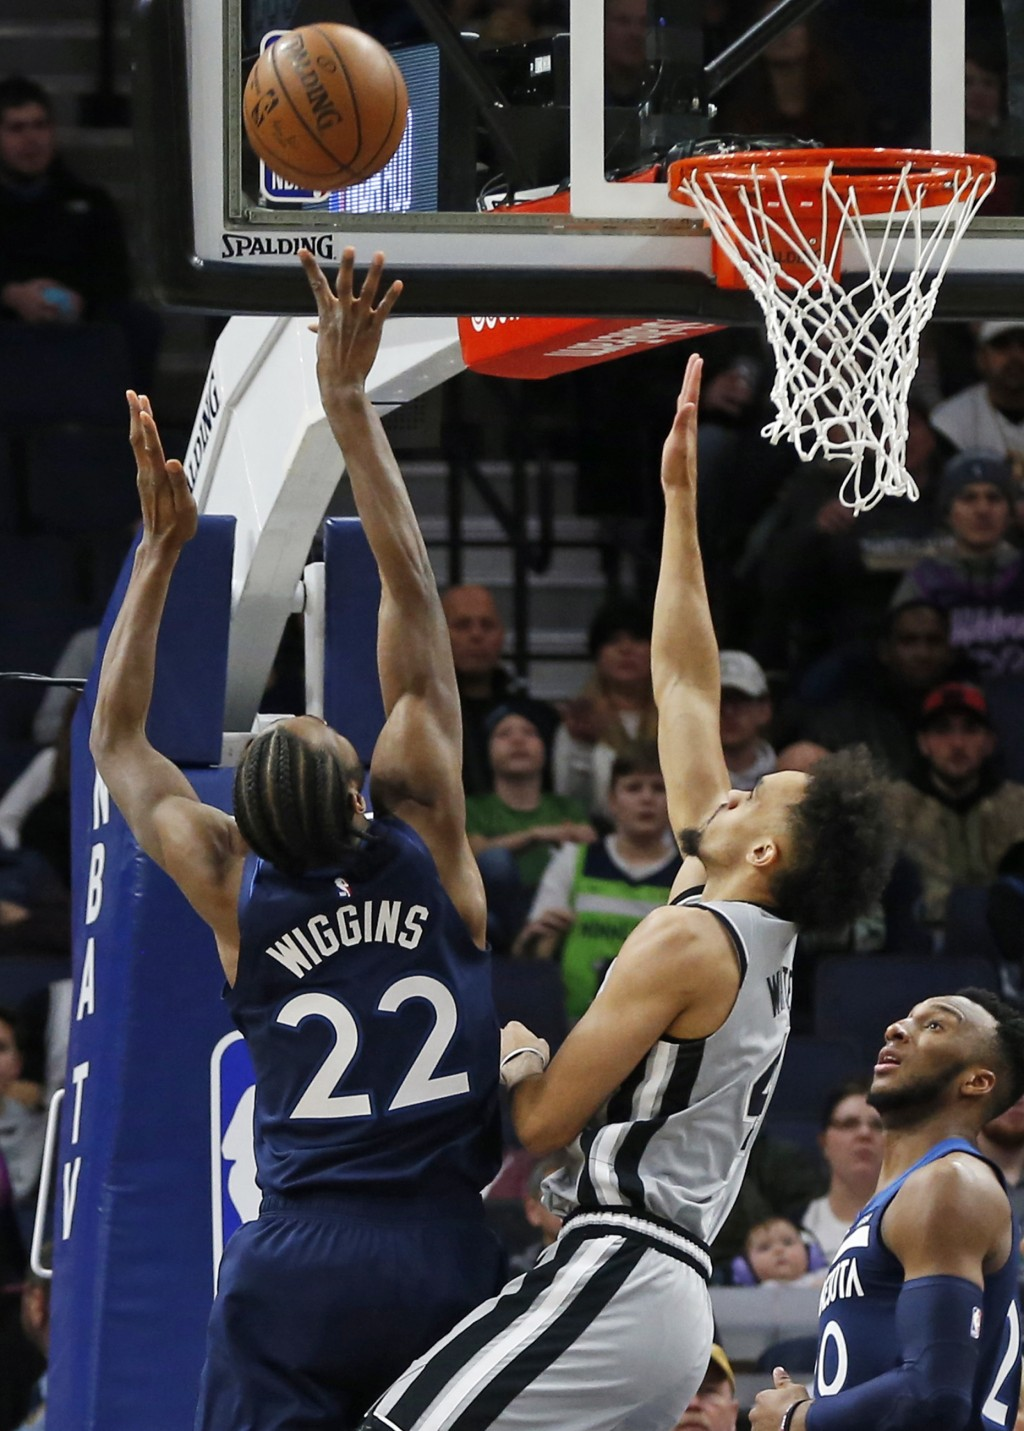 Minnesota Timberwolves' Andrew Wiggins, left, shoots as San Antonio Spurs' Derrick White defends in the first half of an NBA basketball game Friday, J